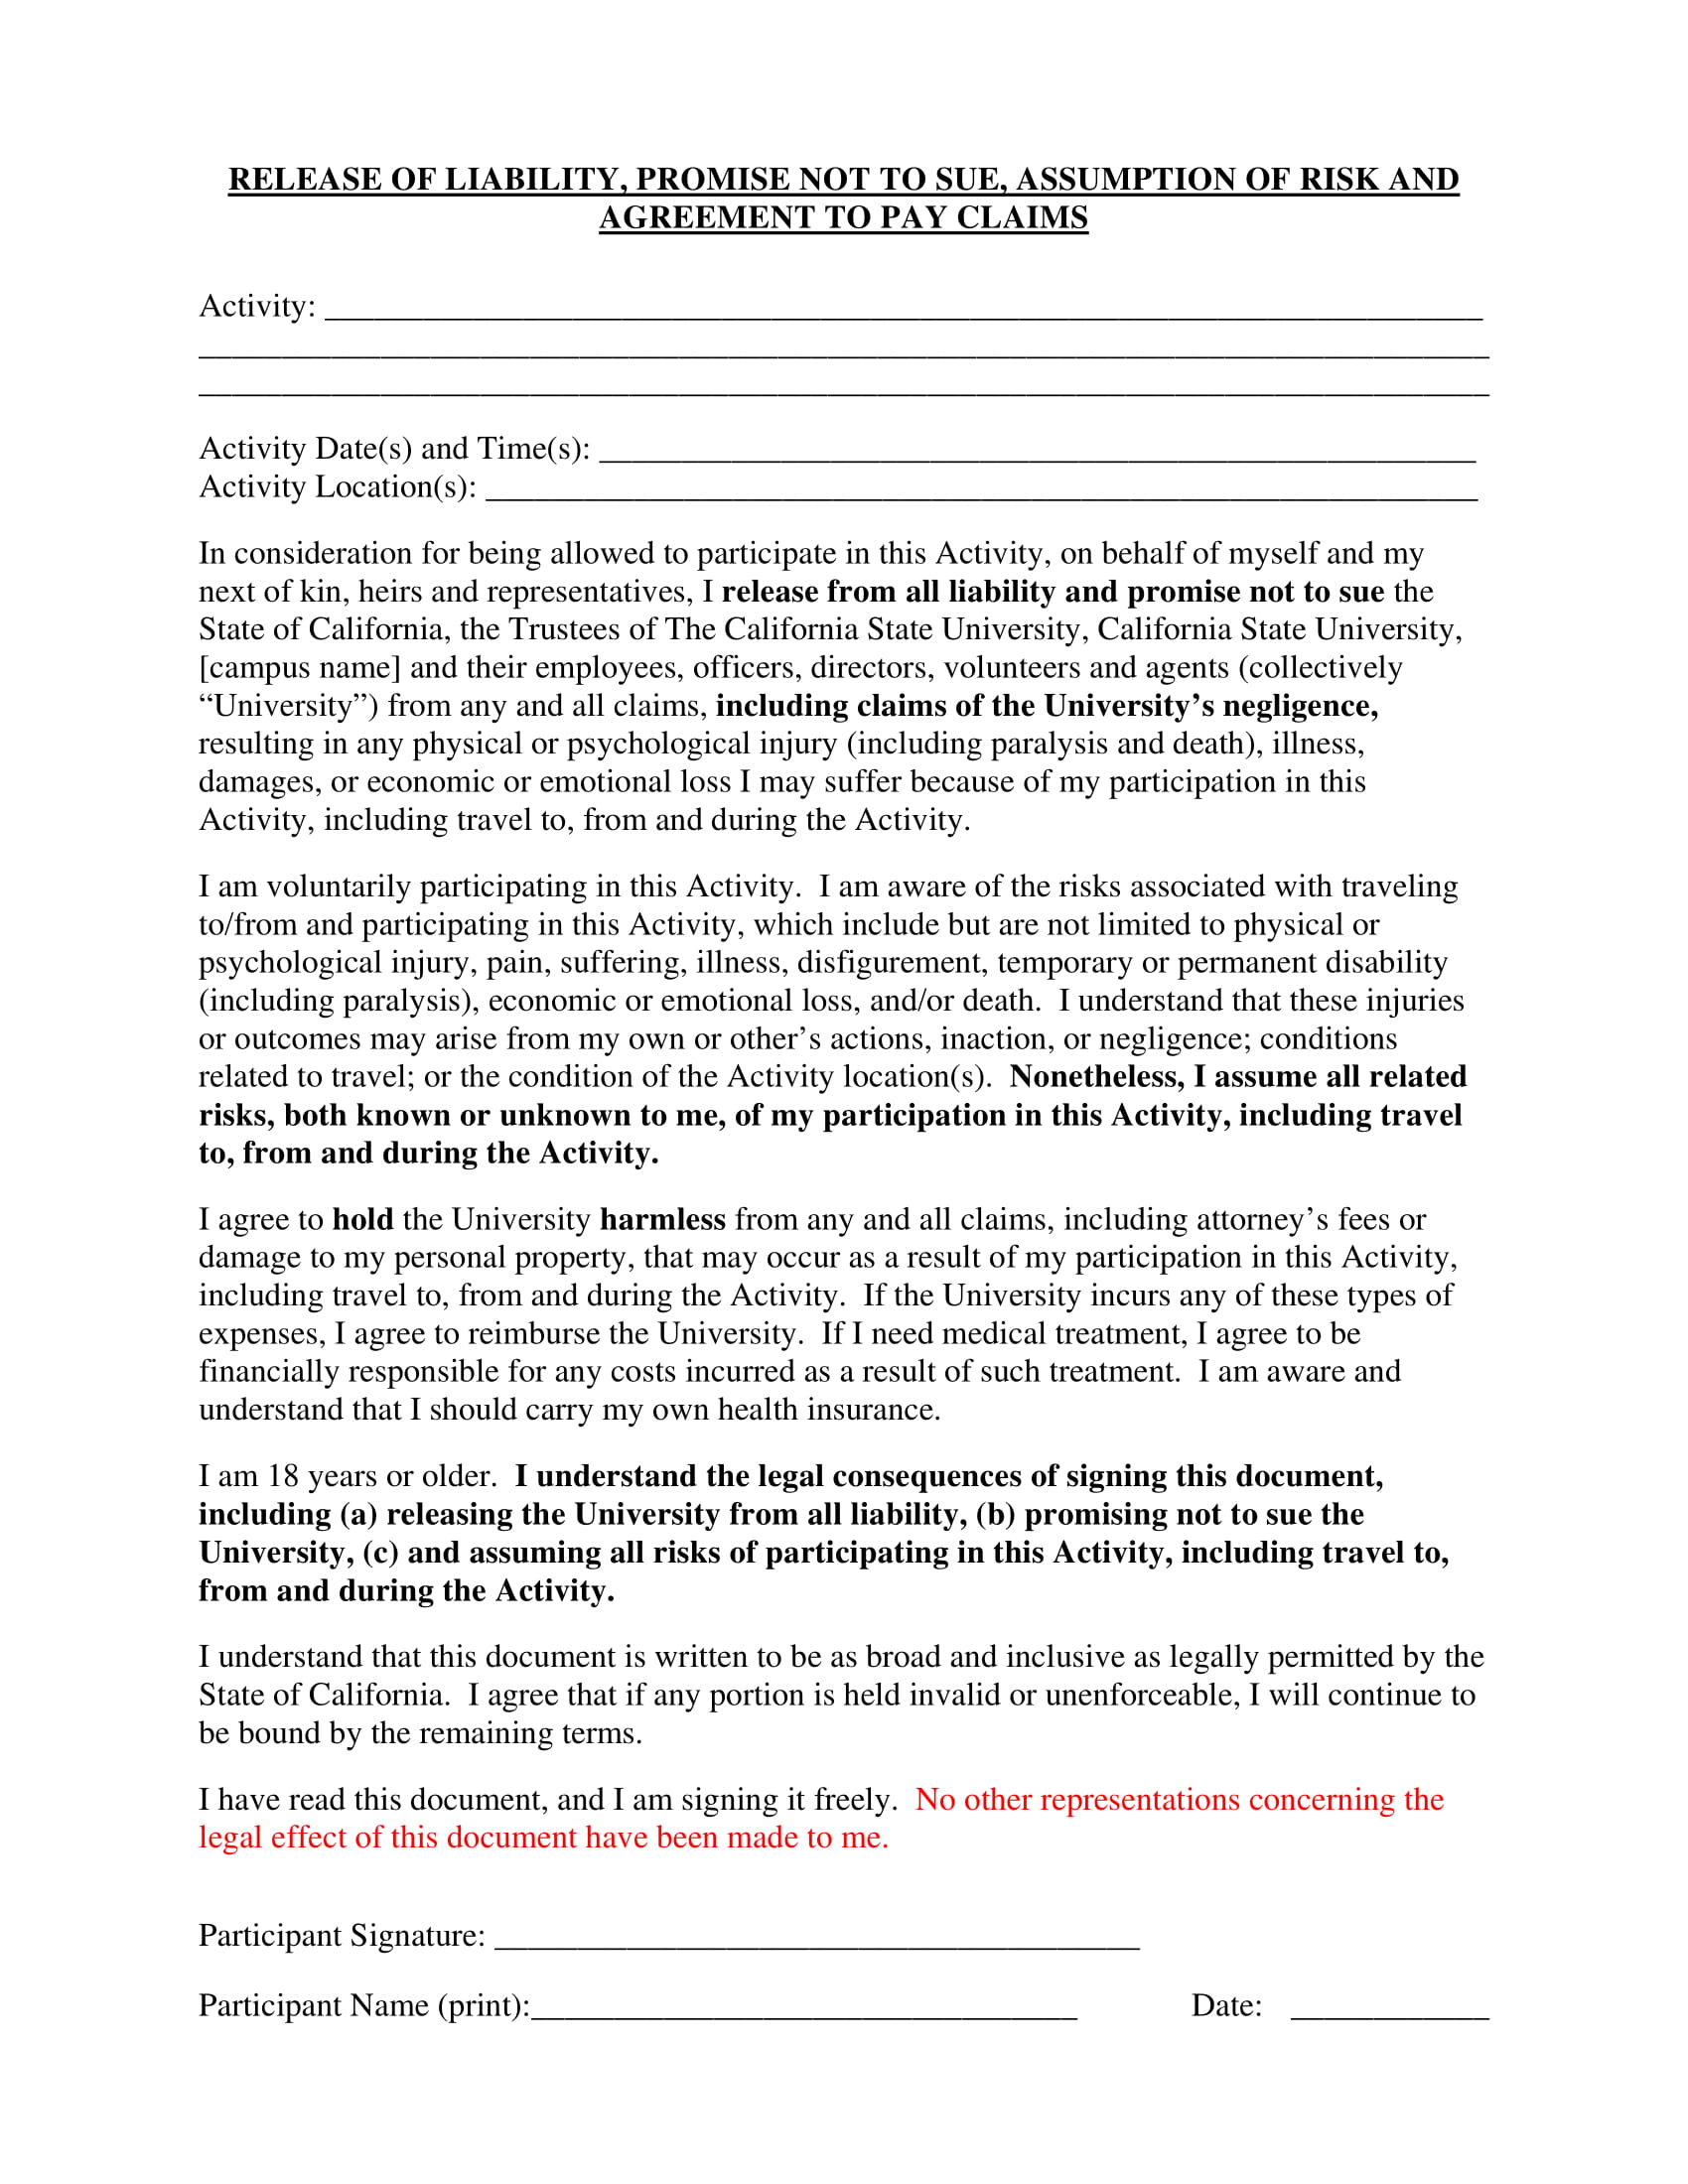 waiver or release of liability form 1